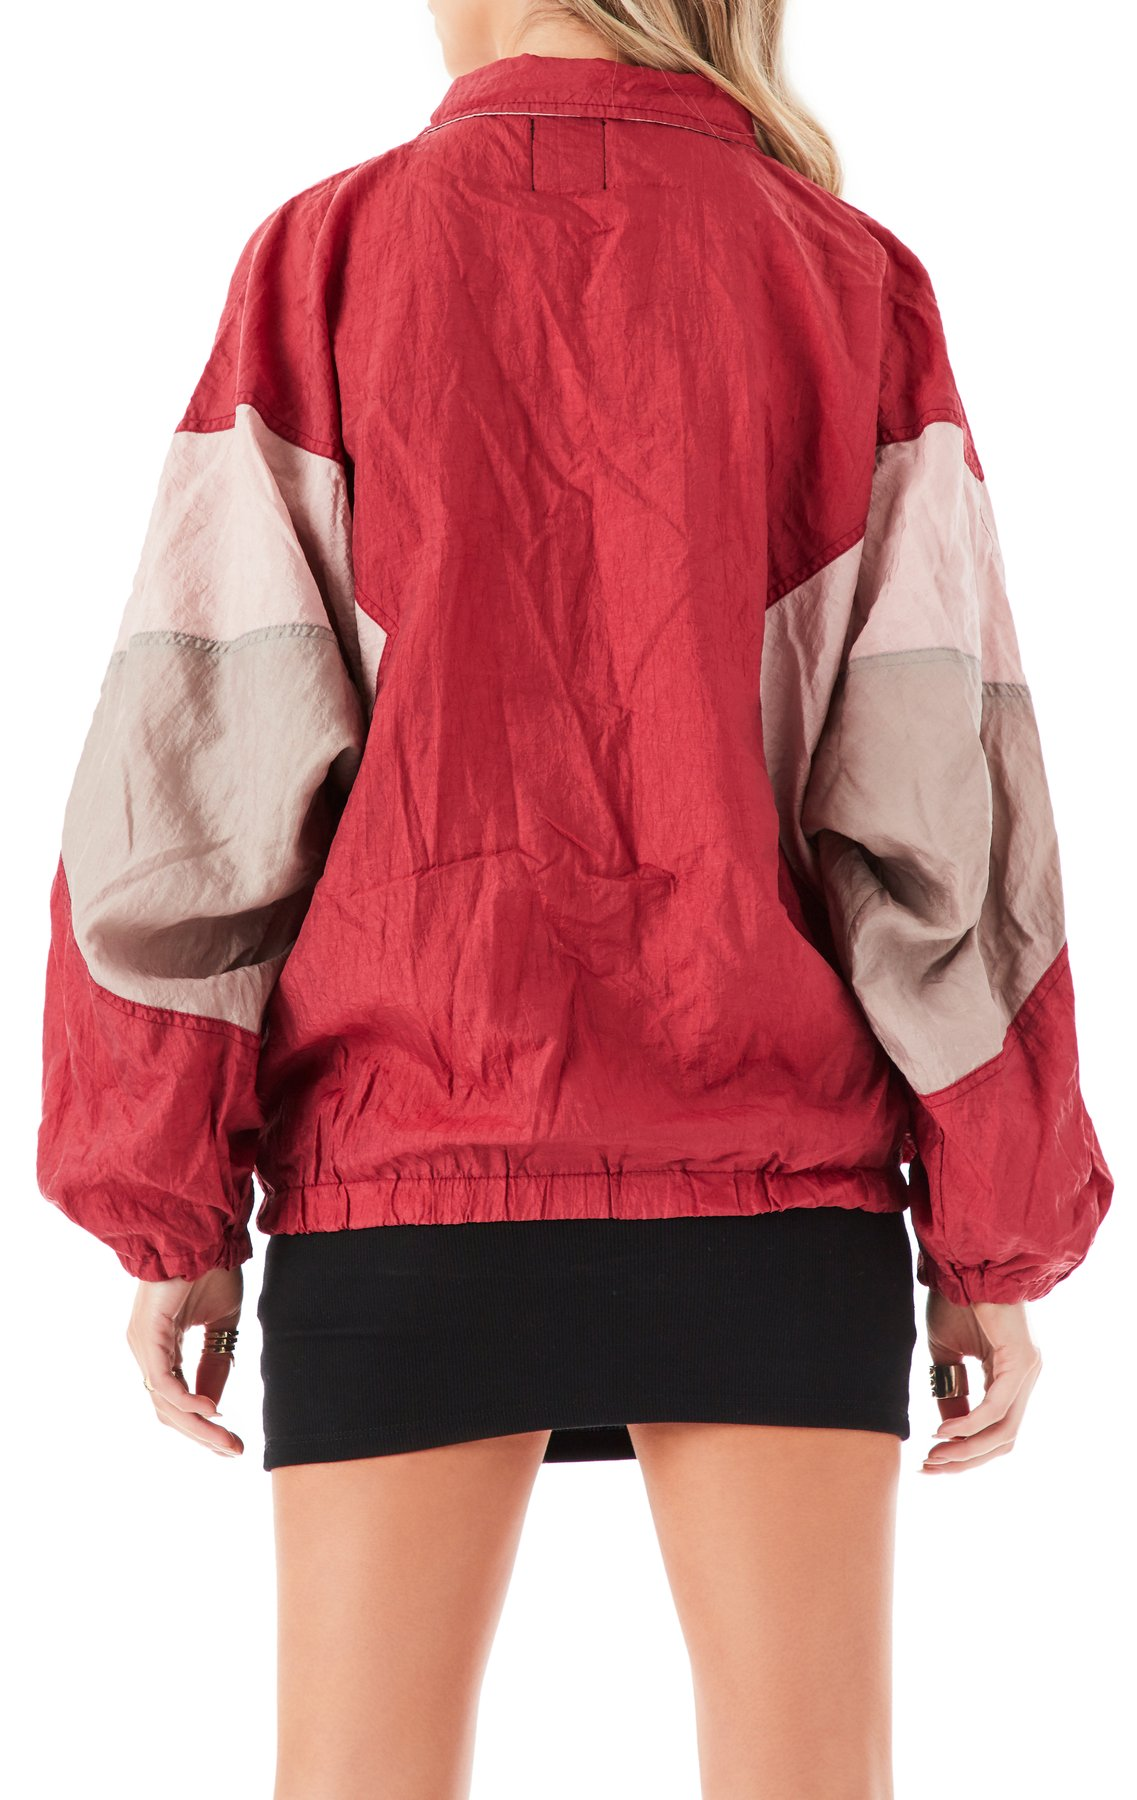 Red zipper long sleeve stitching loose jacket